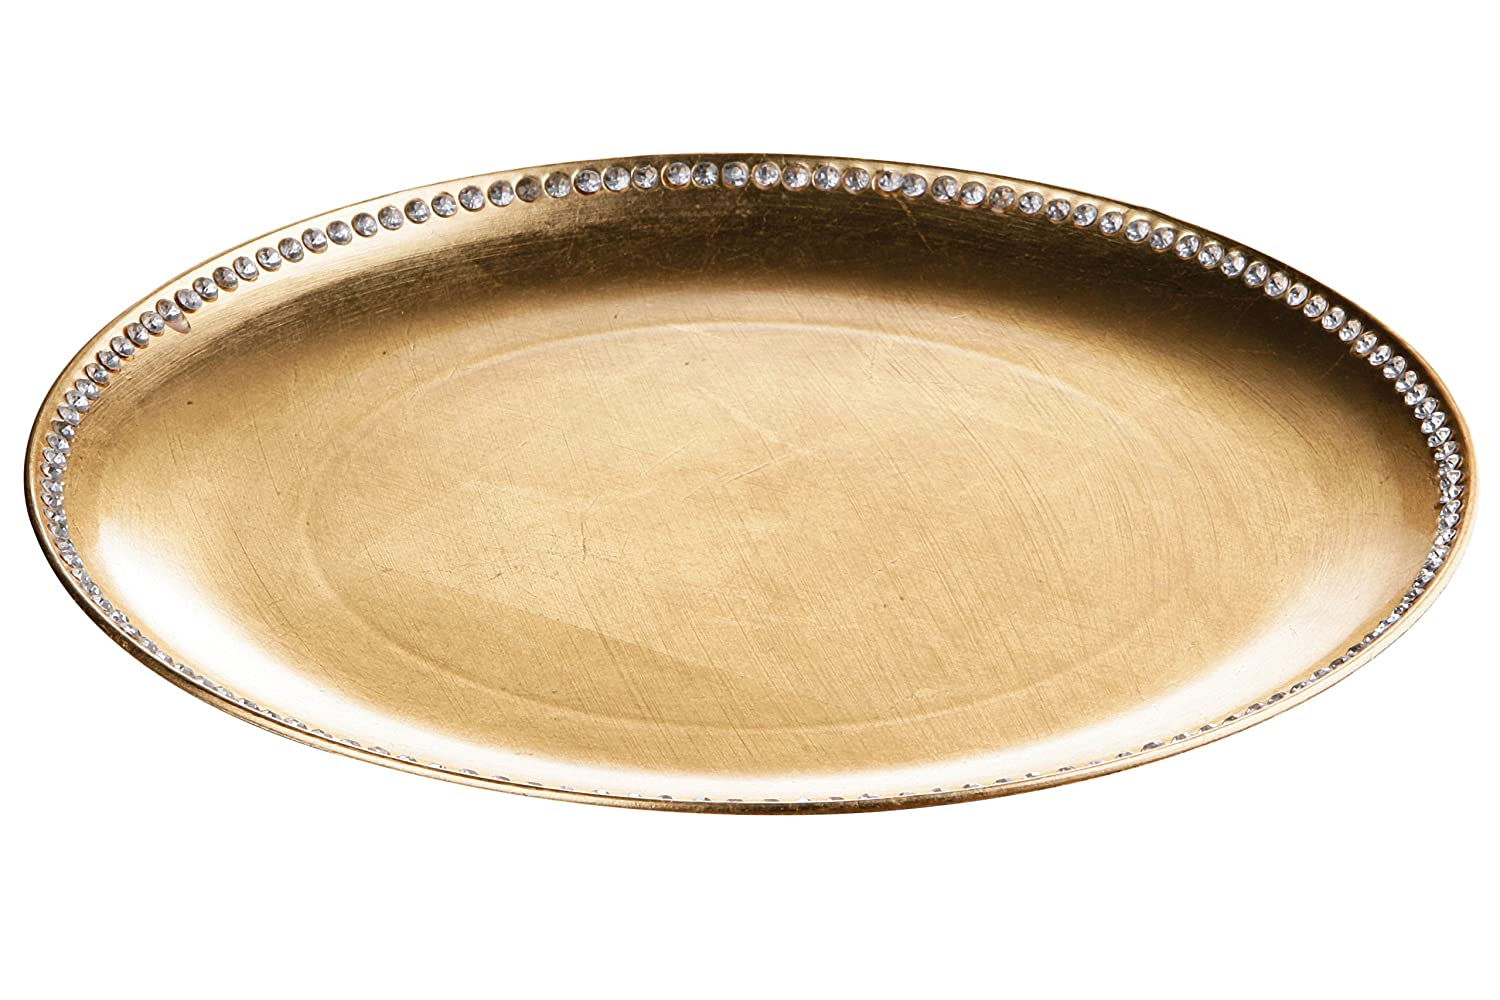 Premier Housewares Coupe Charger Plate With Diamante Edge, 33 Cm  Gold  Radiance